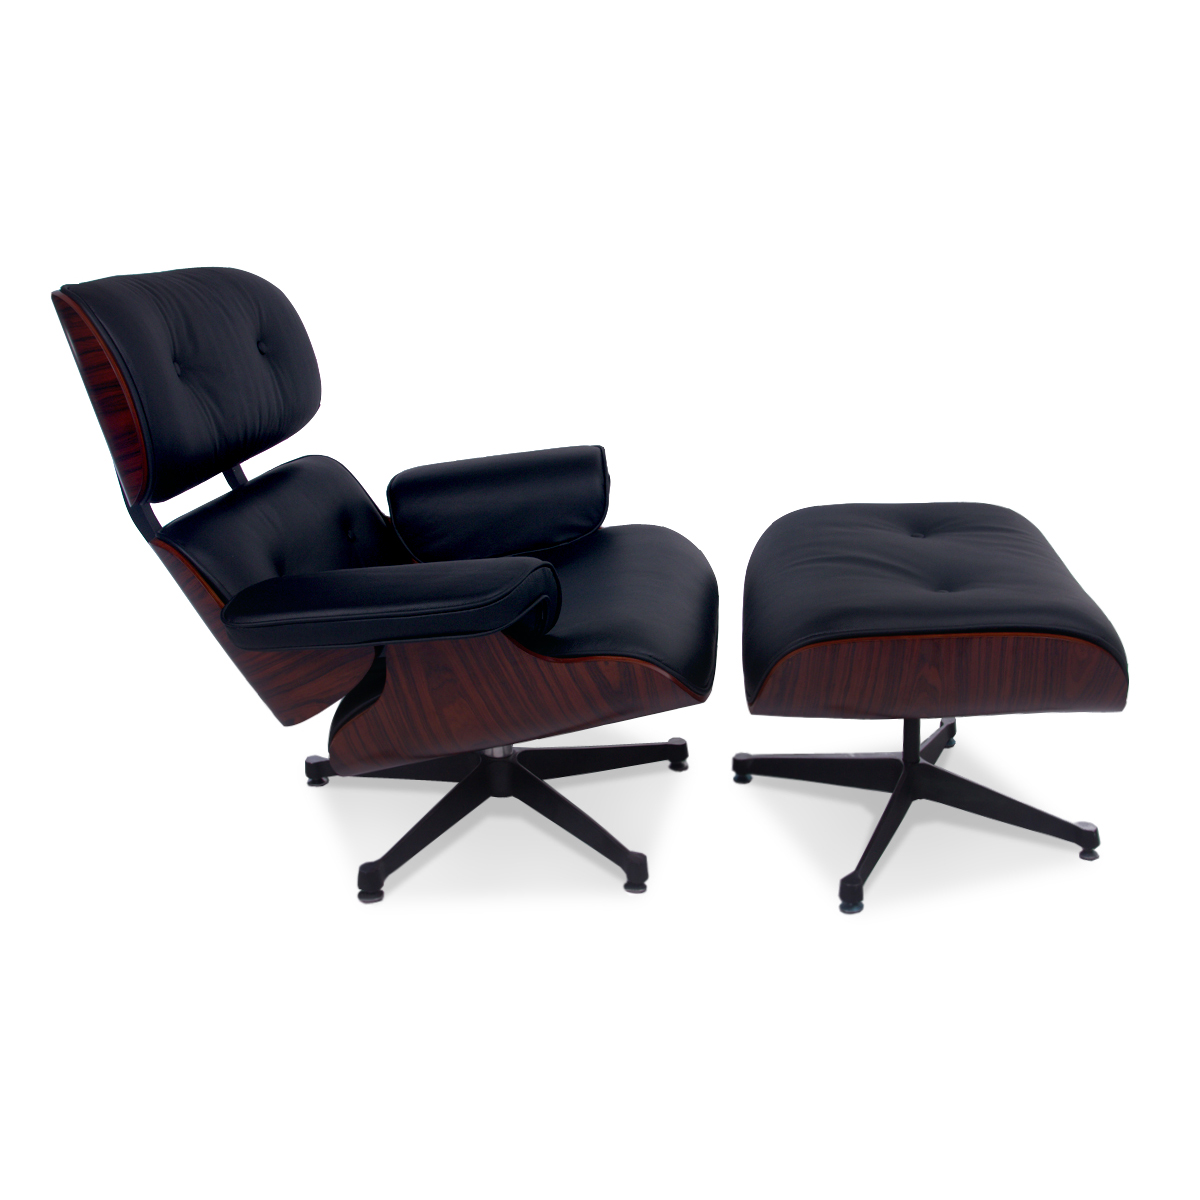 Eames Style Lounge Chair and Ottoman  Modandcomfy